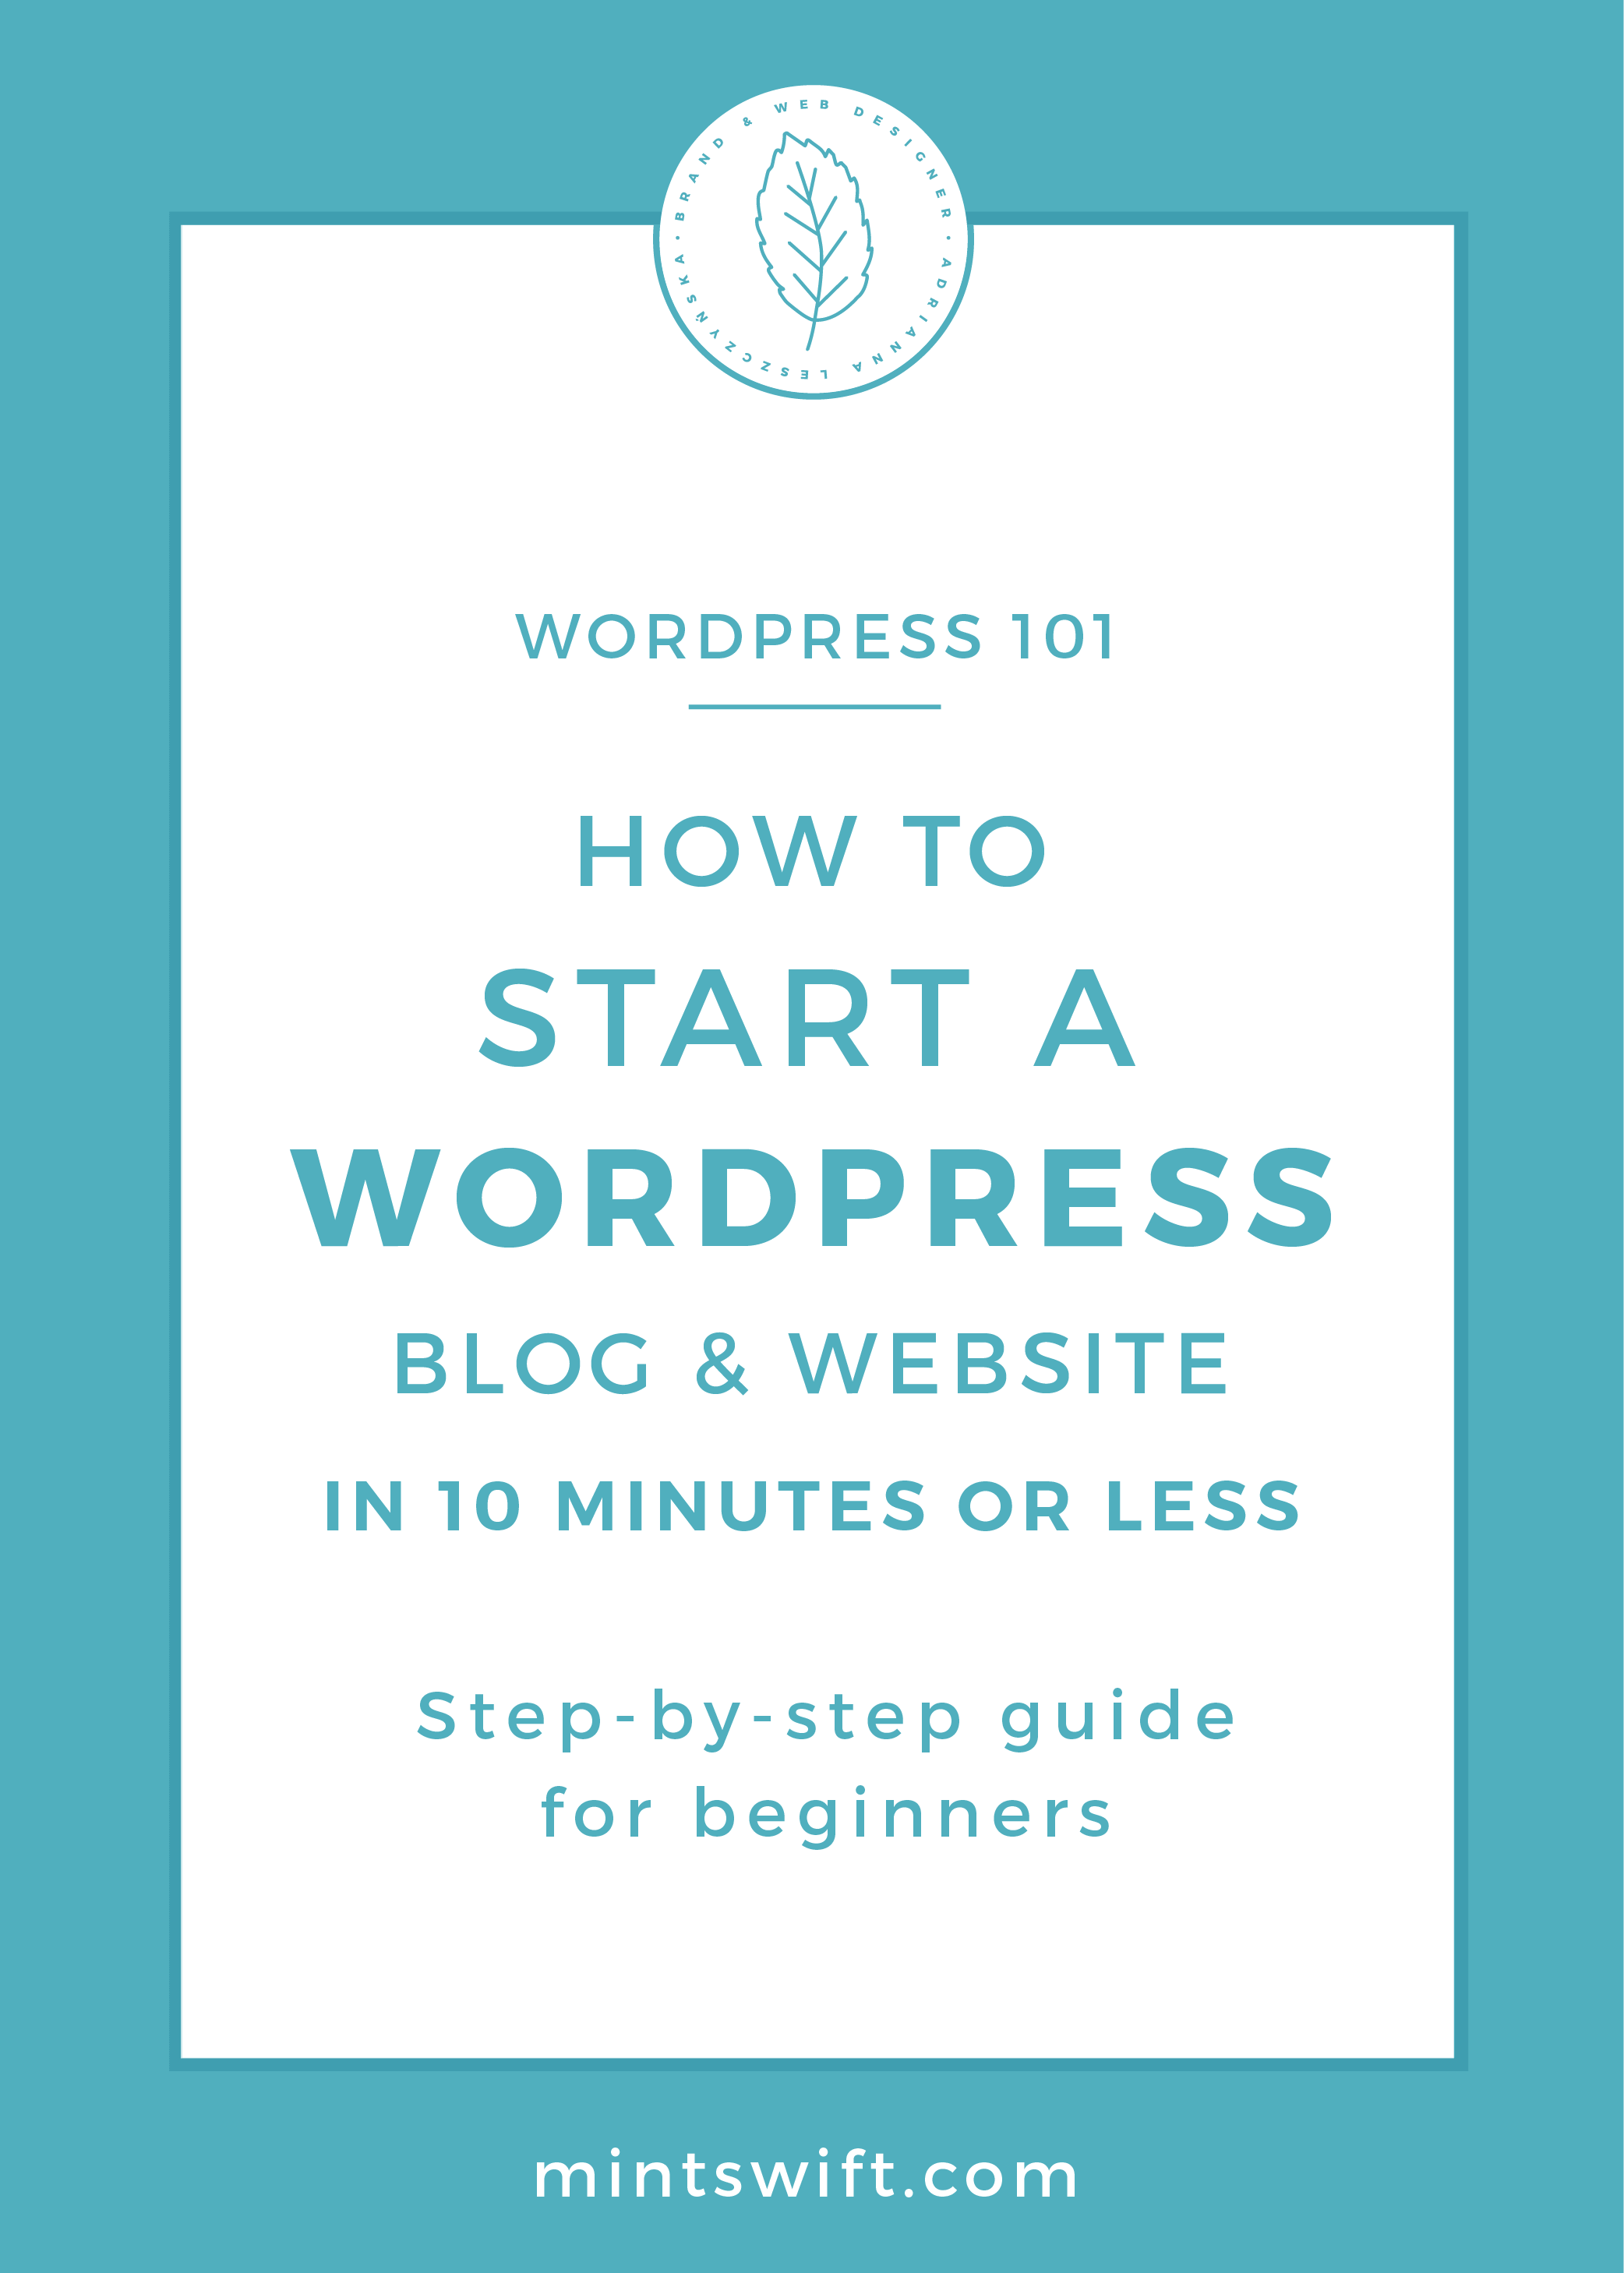 How to Start a WordPress Blog & Website in 10 Minutes or Less. Step-by-Step Guide for Beginners by MintSwift